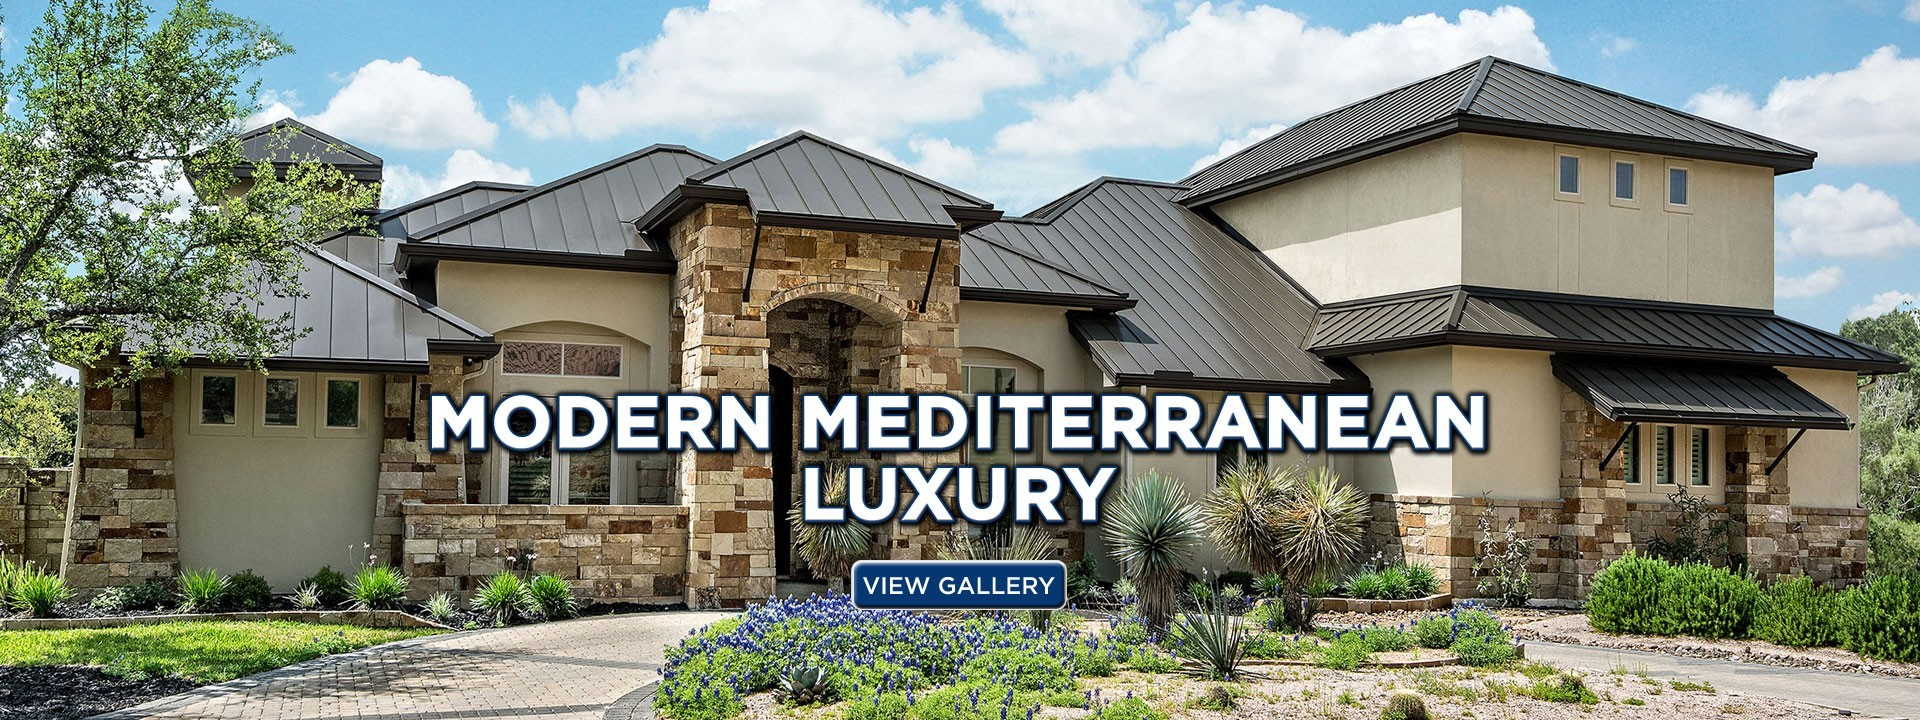 Modern Mediterranean Luxury Home Builder